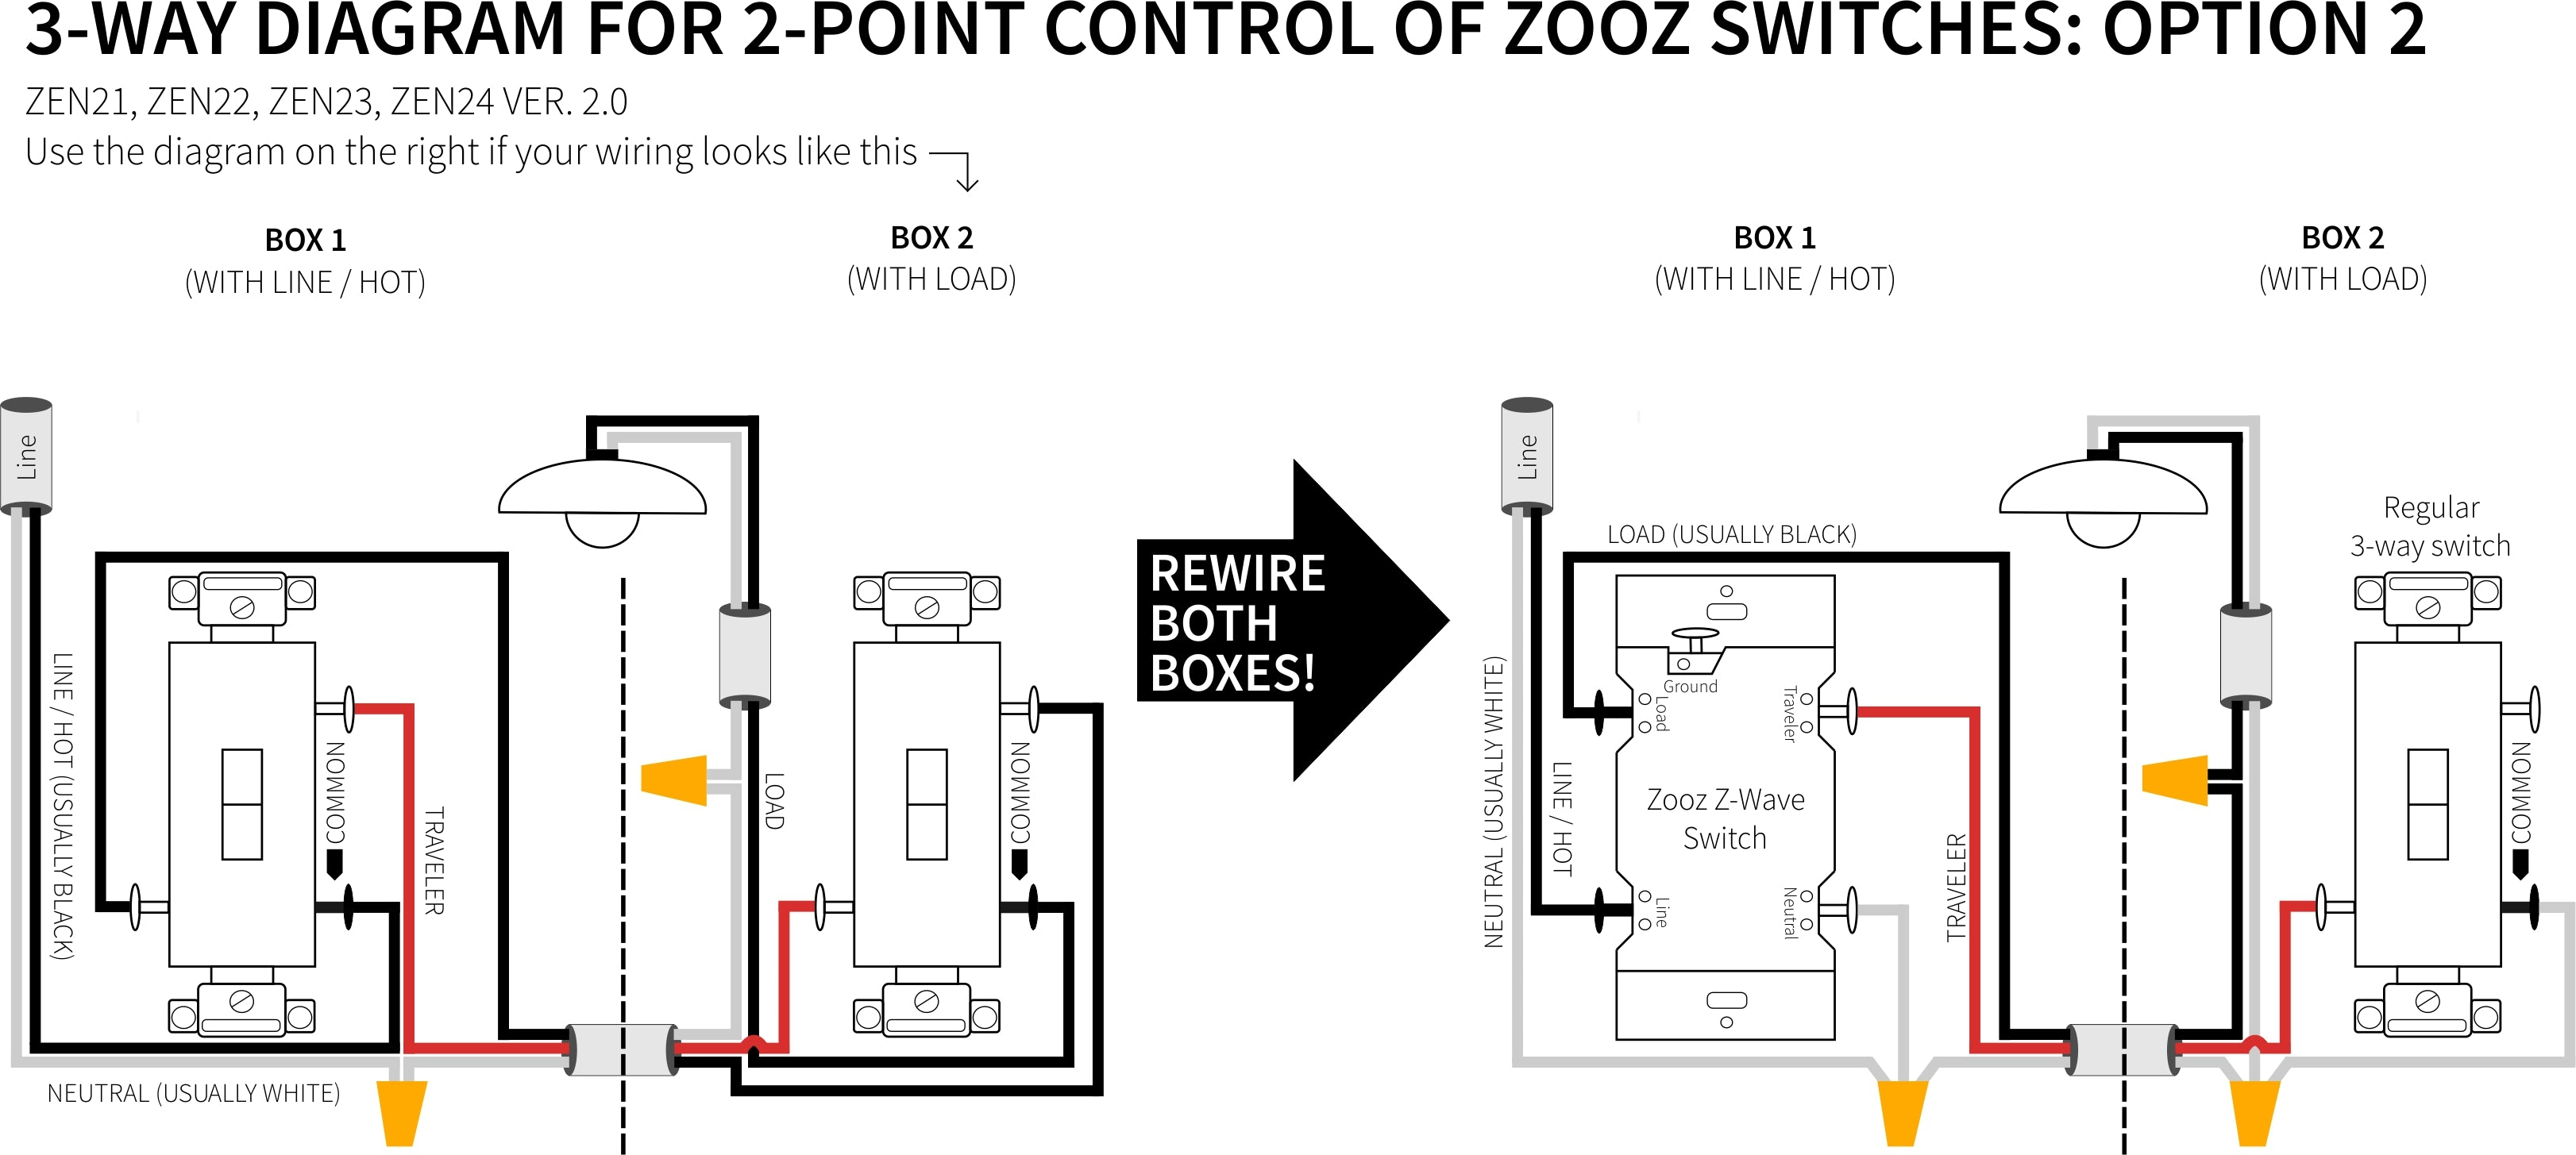 Wiring Diagram Gallery: 3 Way Toggle Switch Wiring Diagram